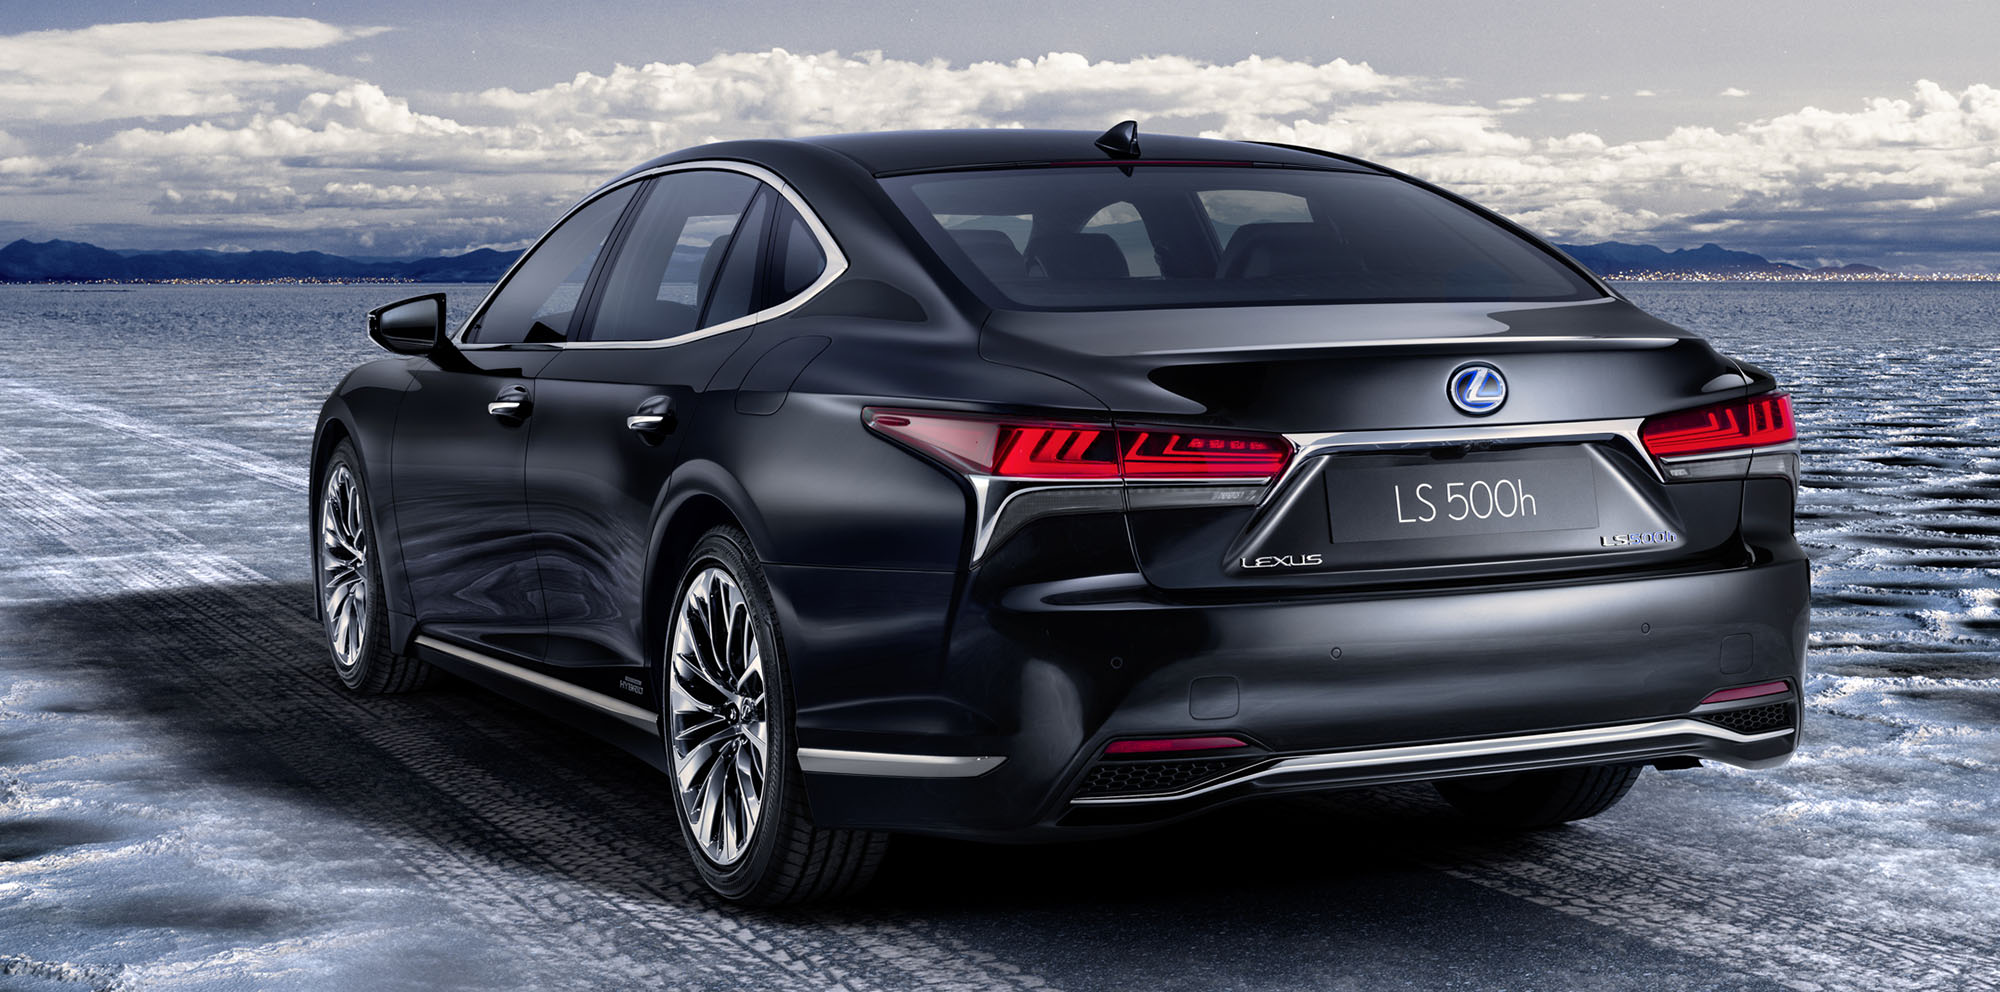 2018 Lexus LS500h Revealed Photos CarAdvice